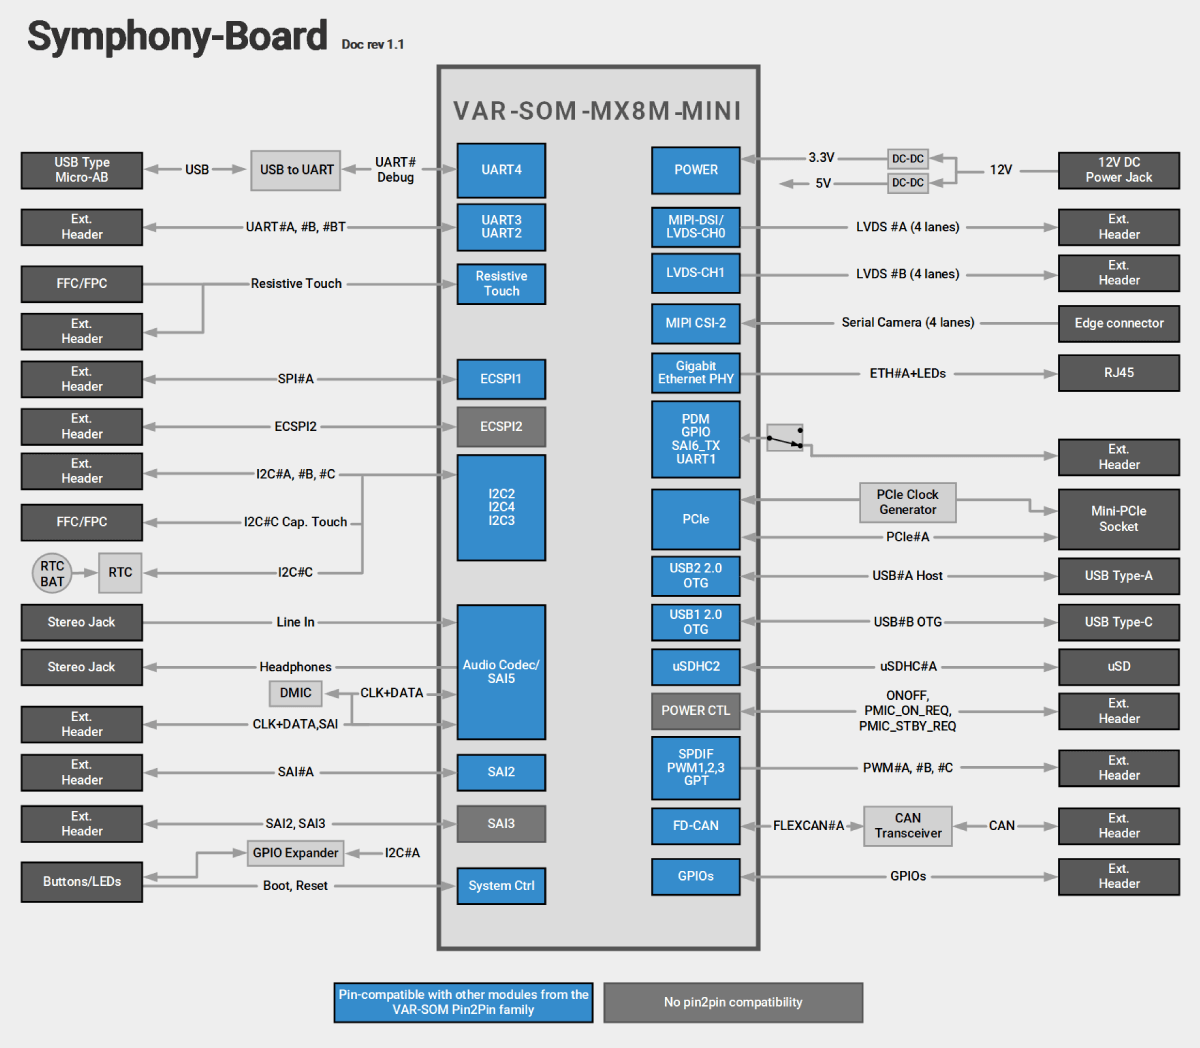 Symphony-Board With VAR-SOM-MX8M-MINI Block Diagram Diagram